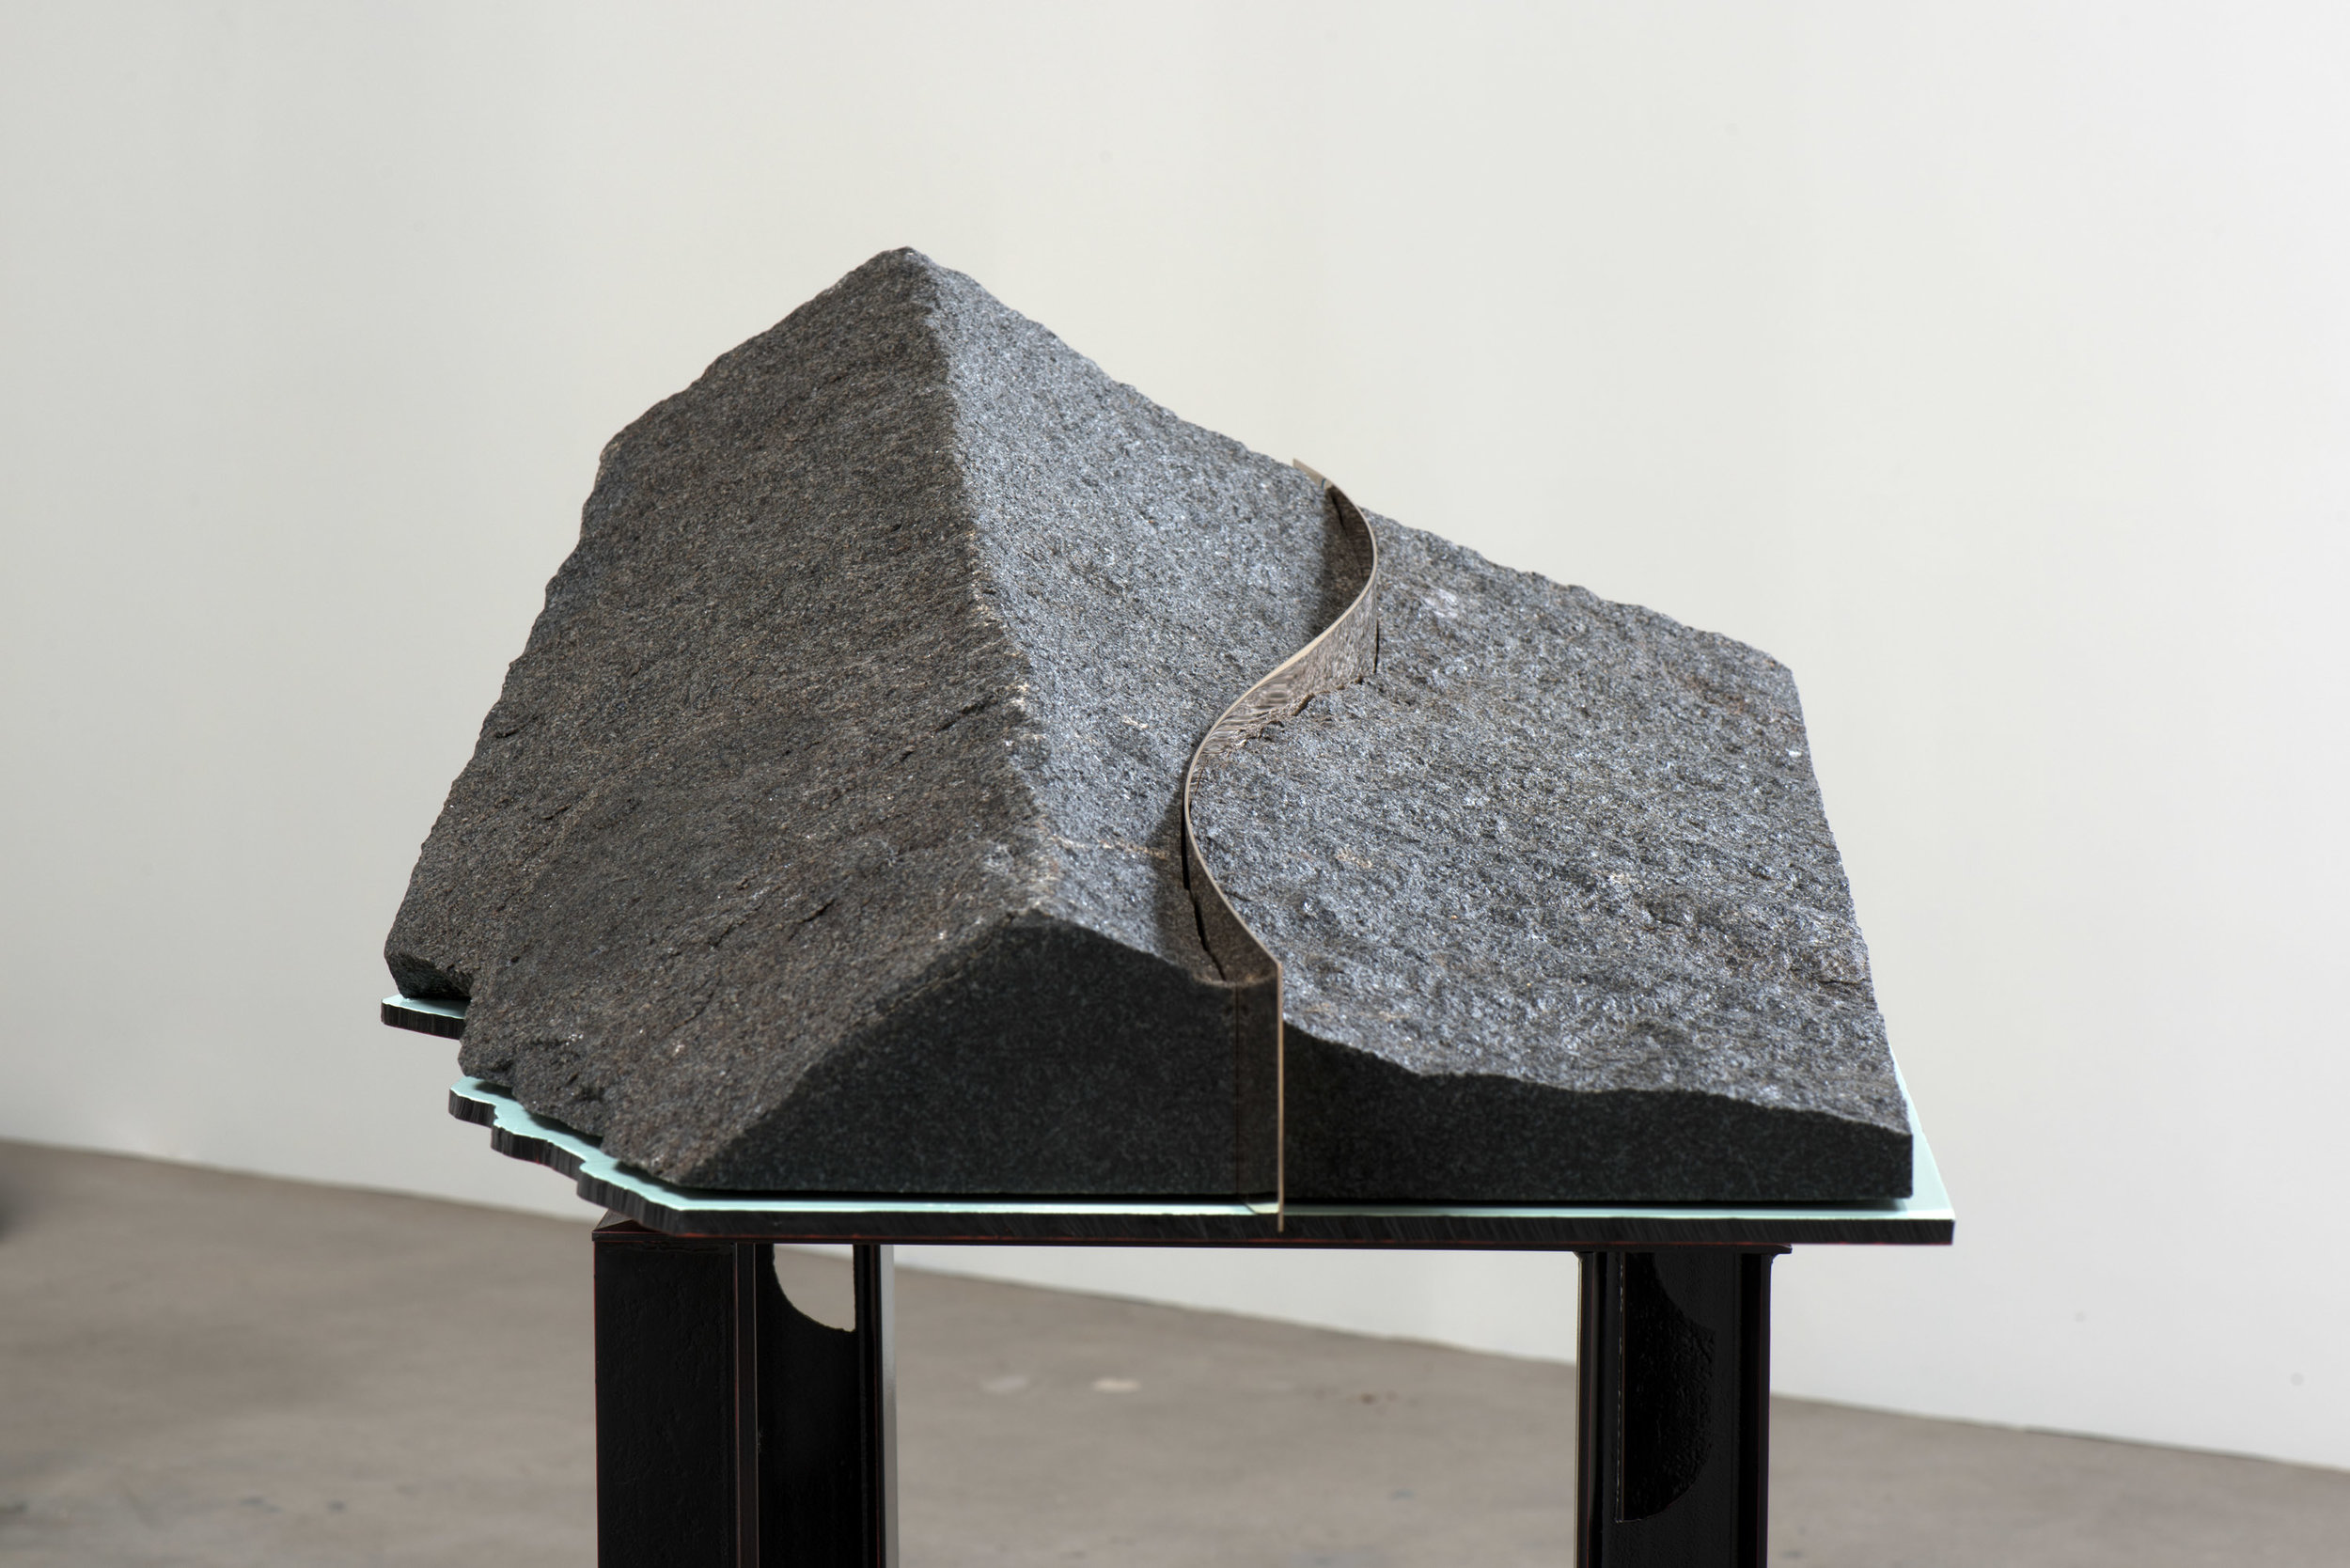 VI Model of an Earth Fastener on the Garlock Fault , 2019 Steel, enamel, granidiorite, and bronze 50 x 48 x 25 inches